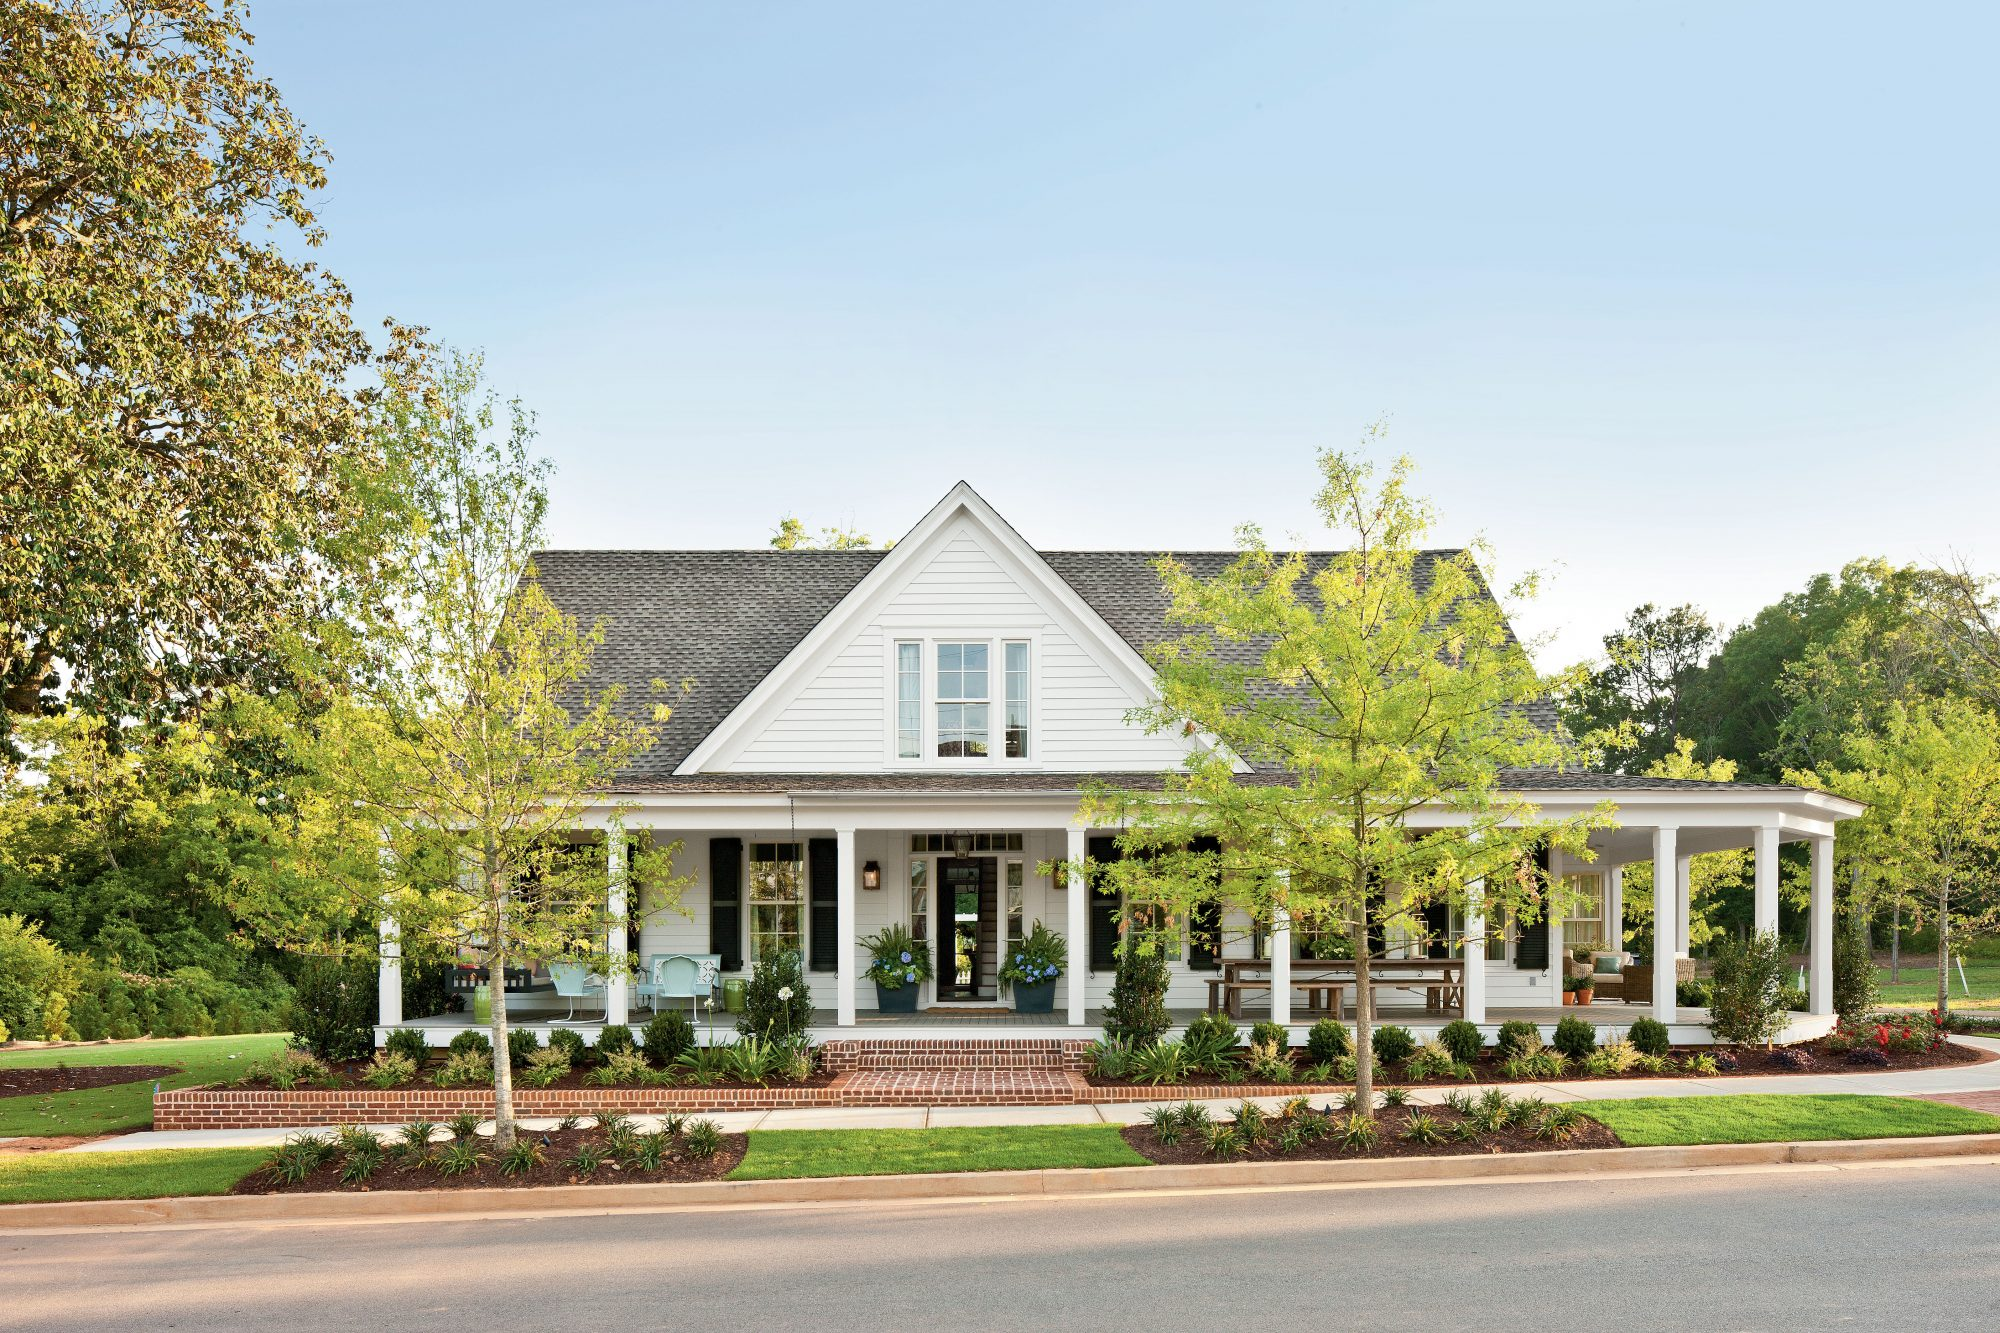 From Old Farmhouse to New Dreamhouse